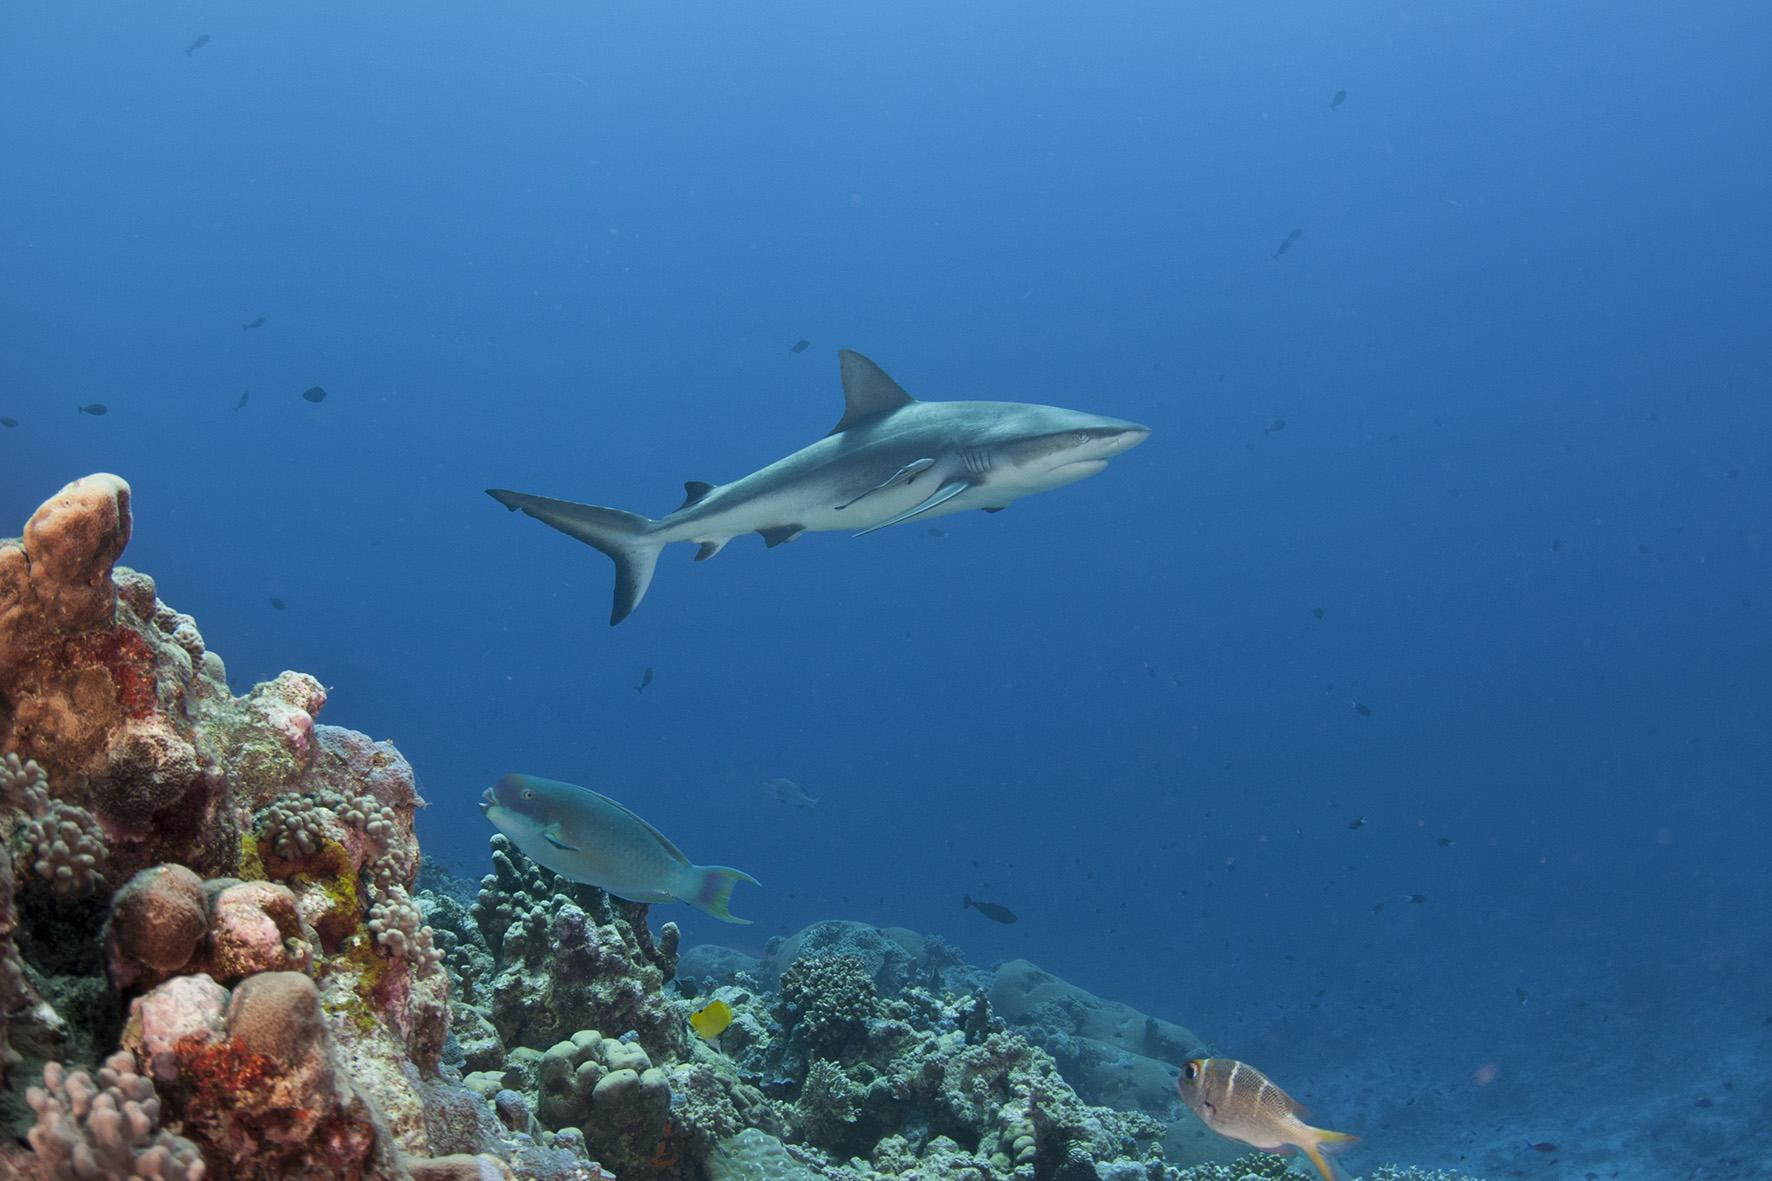 Shark research yields promising results